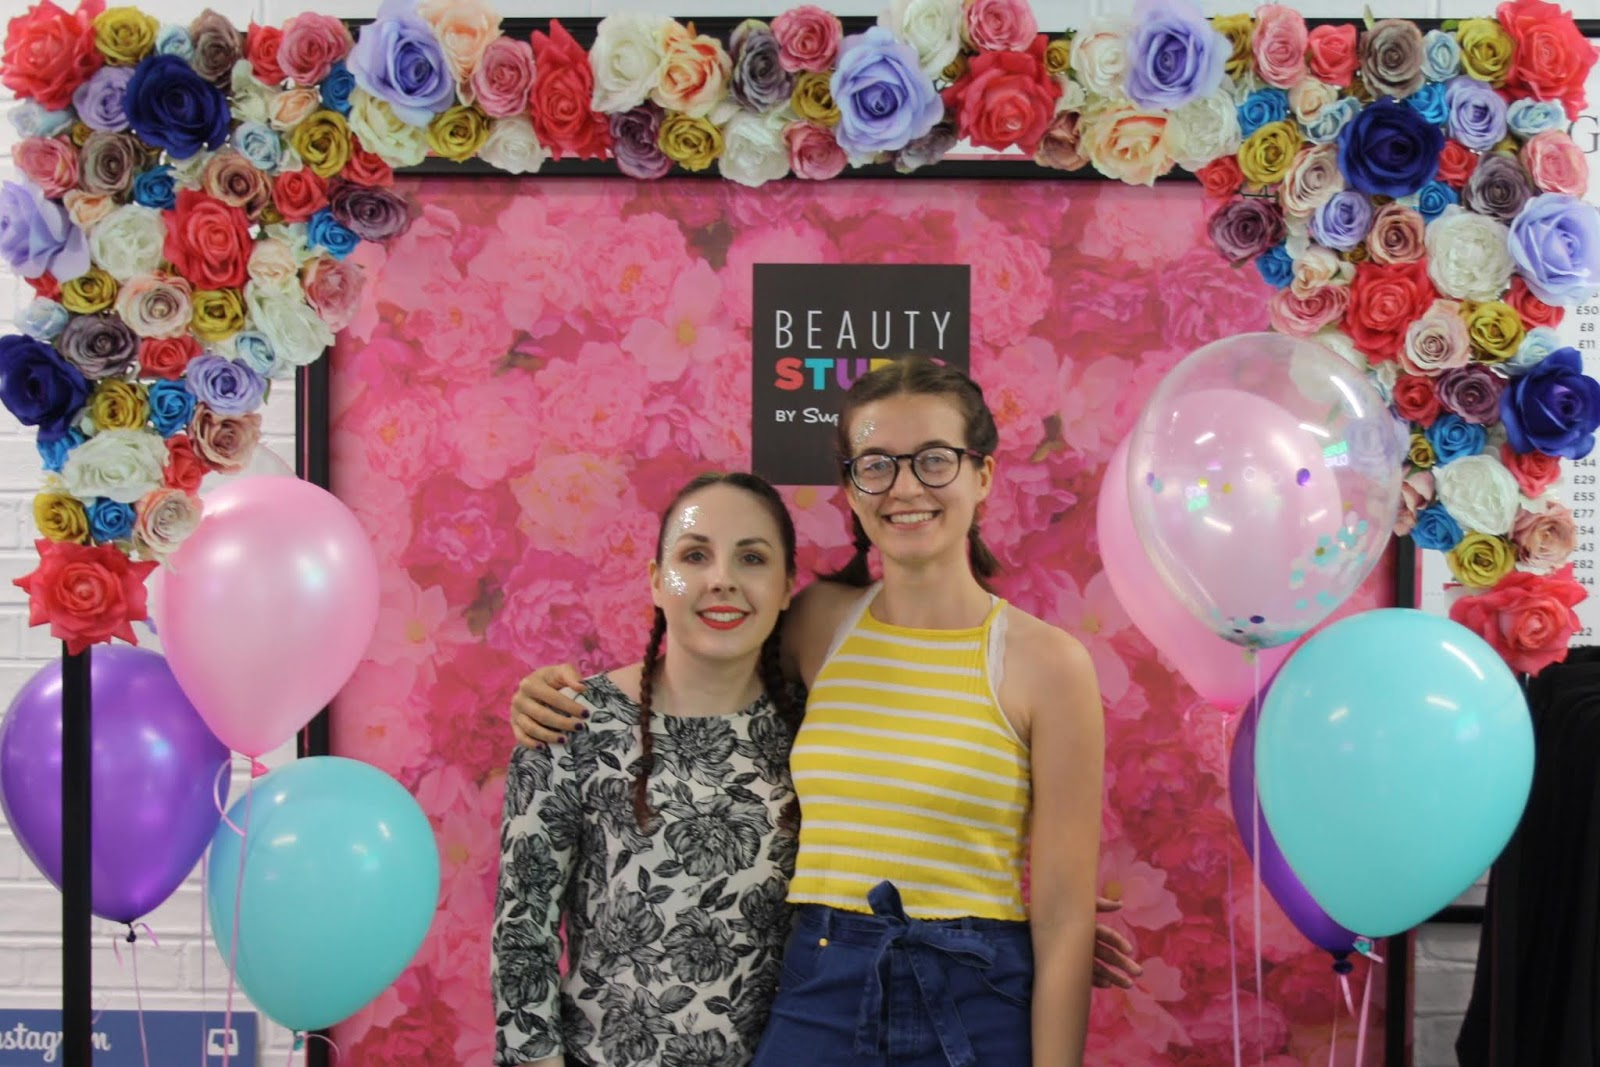 Abbey and Kirstie stand in front of a floral photo booth